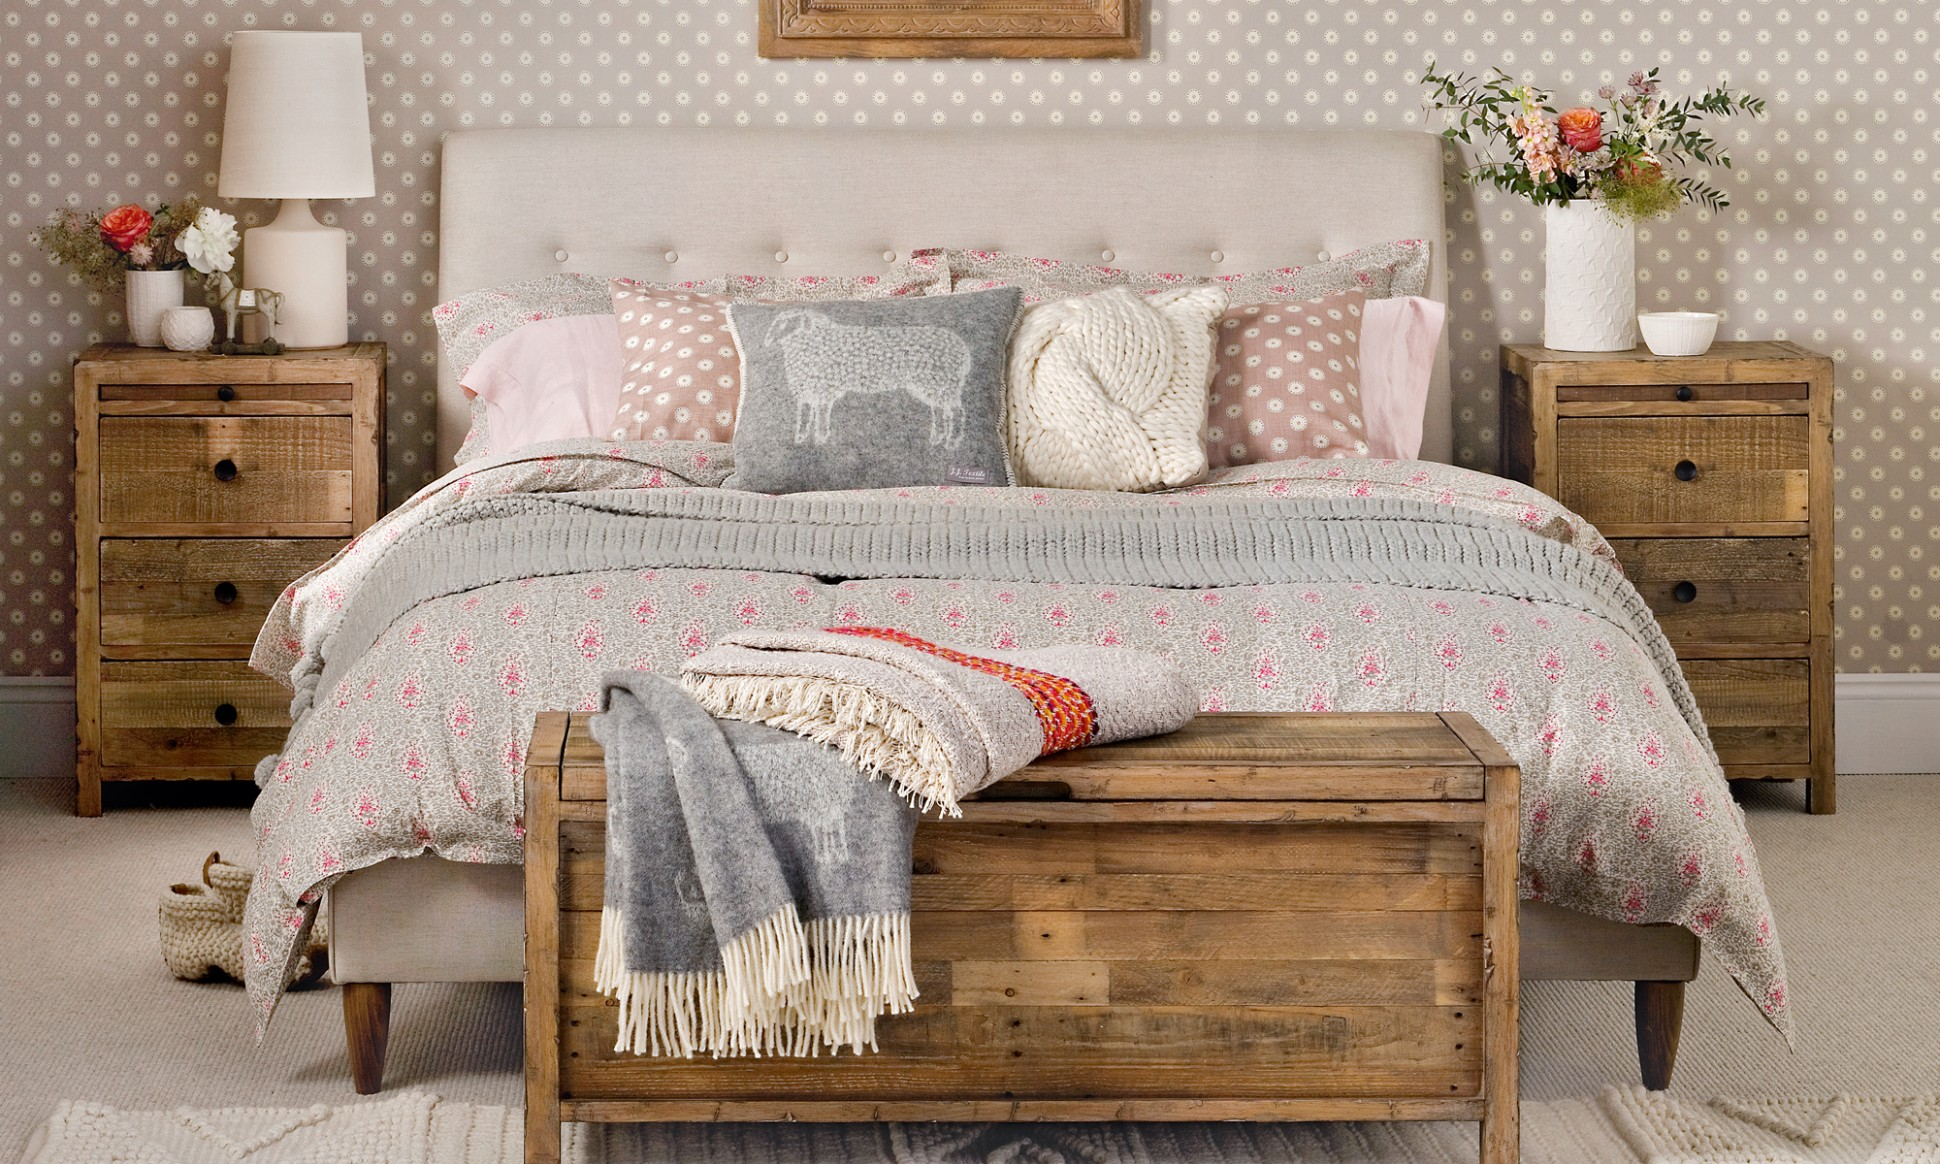 Cosy bedroom ideas for a restful retreat  Ideal Home - Bedroom Ideas Cozy